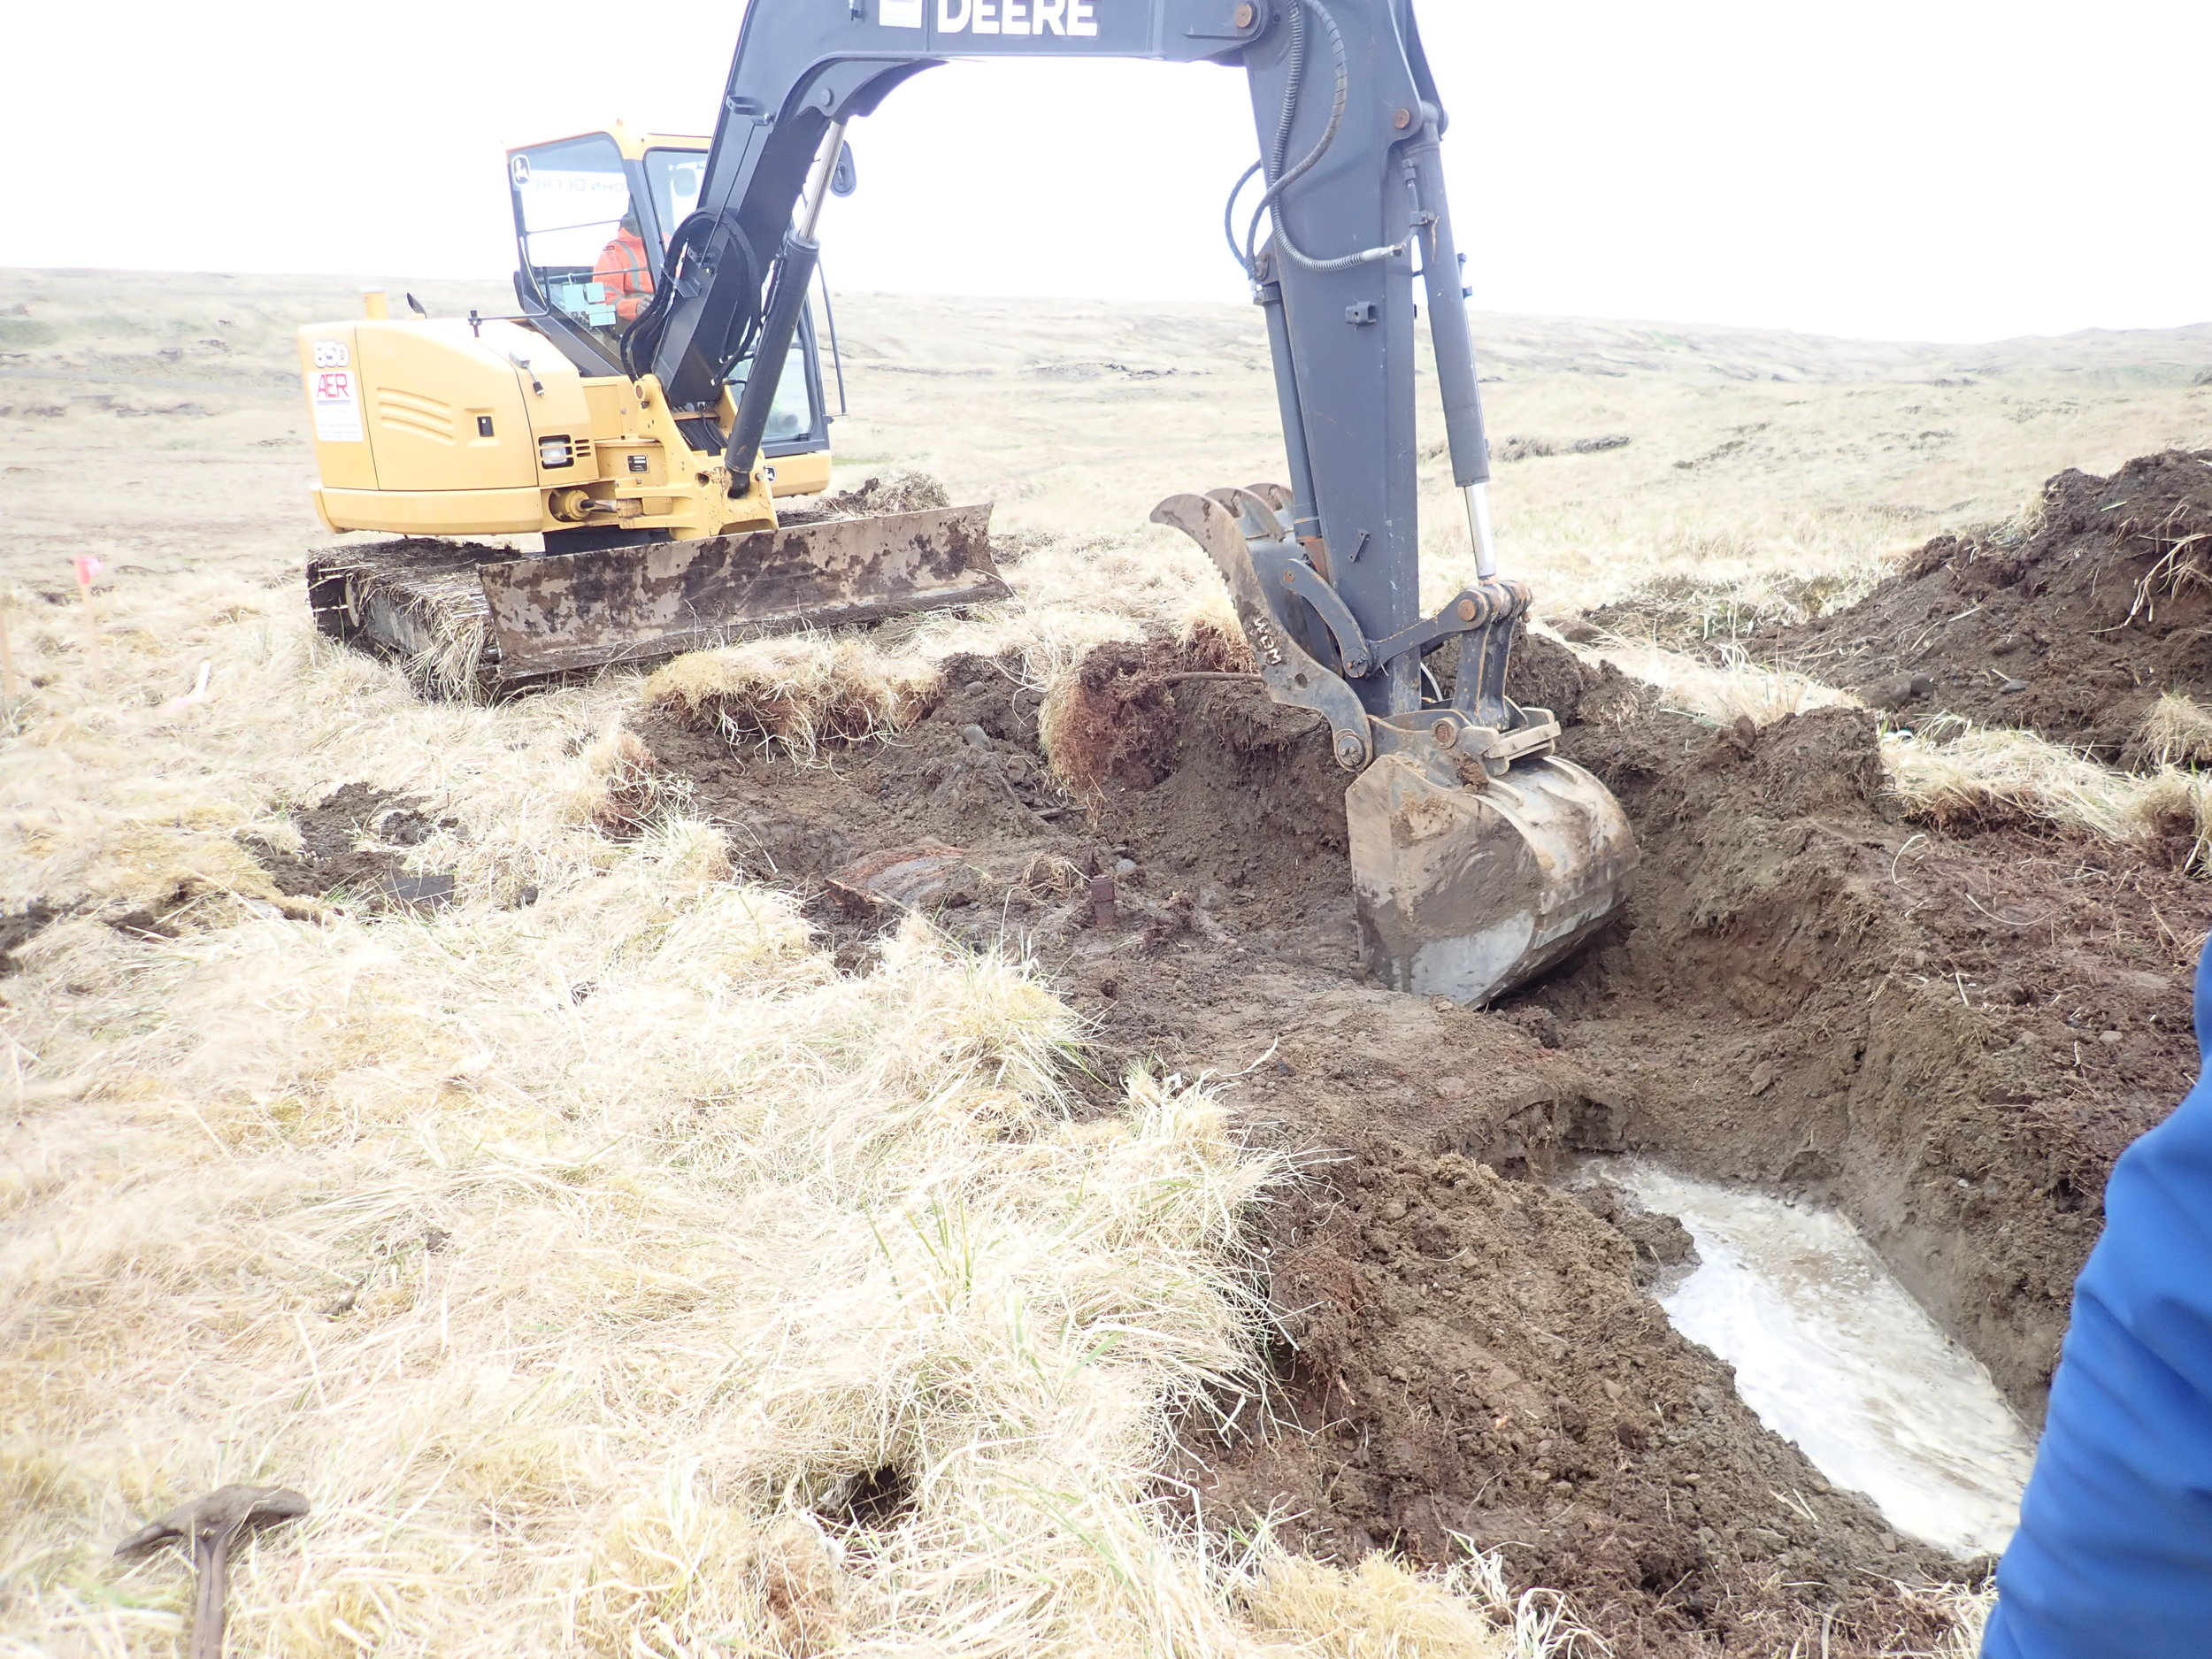 Removing an underground storage tank from a contaminated site